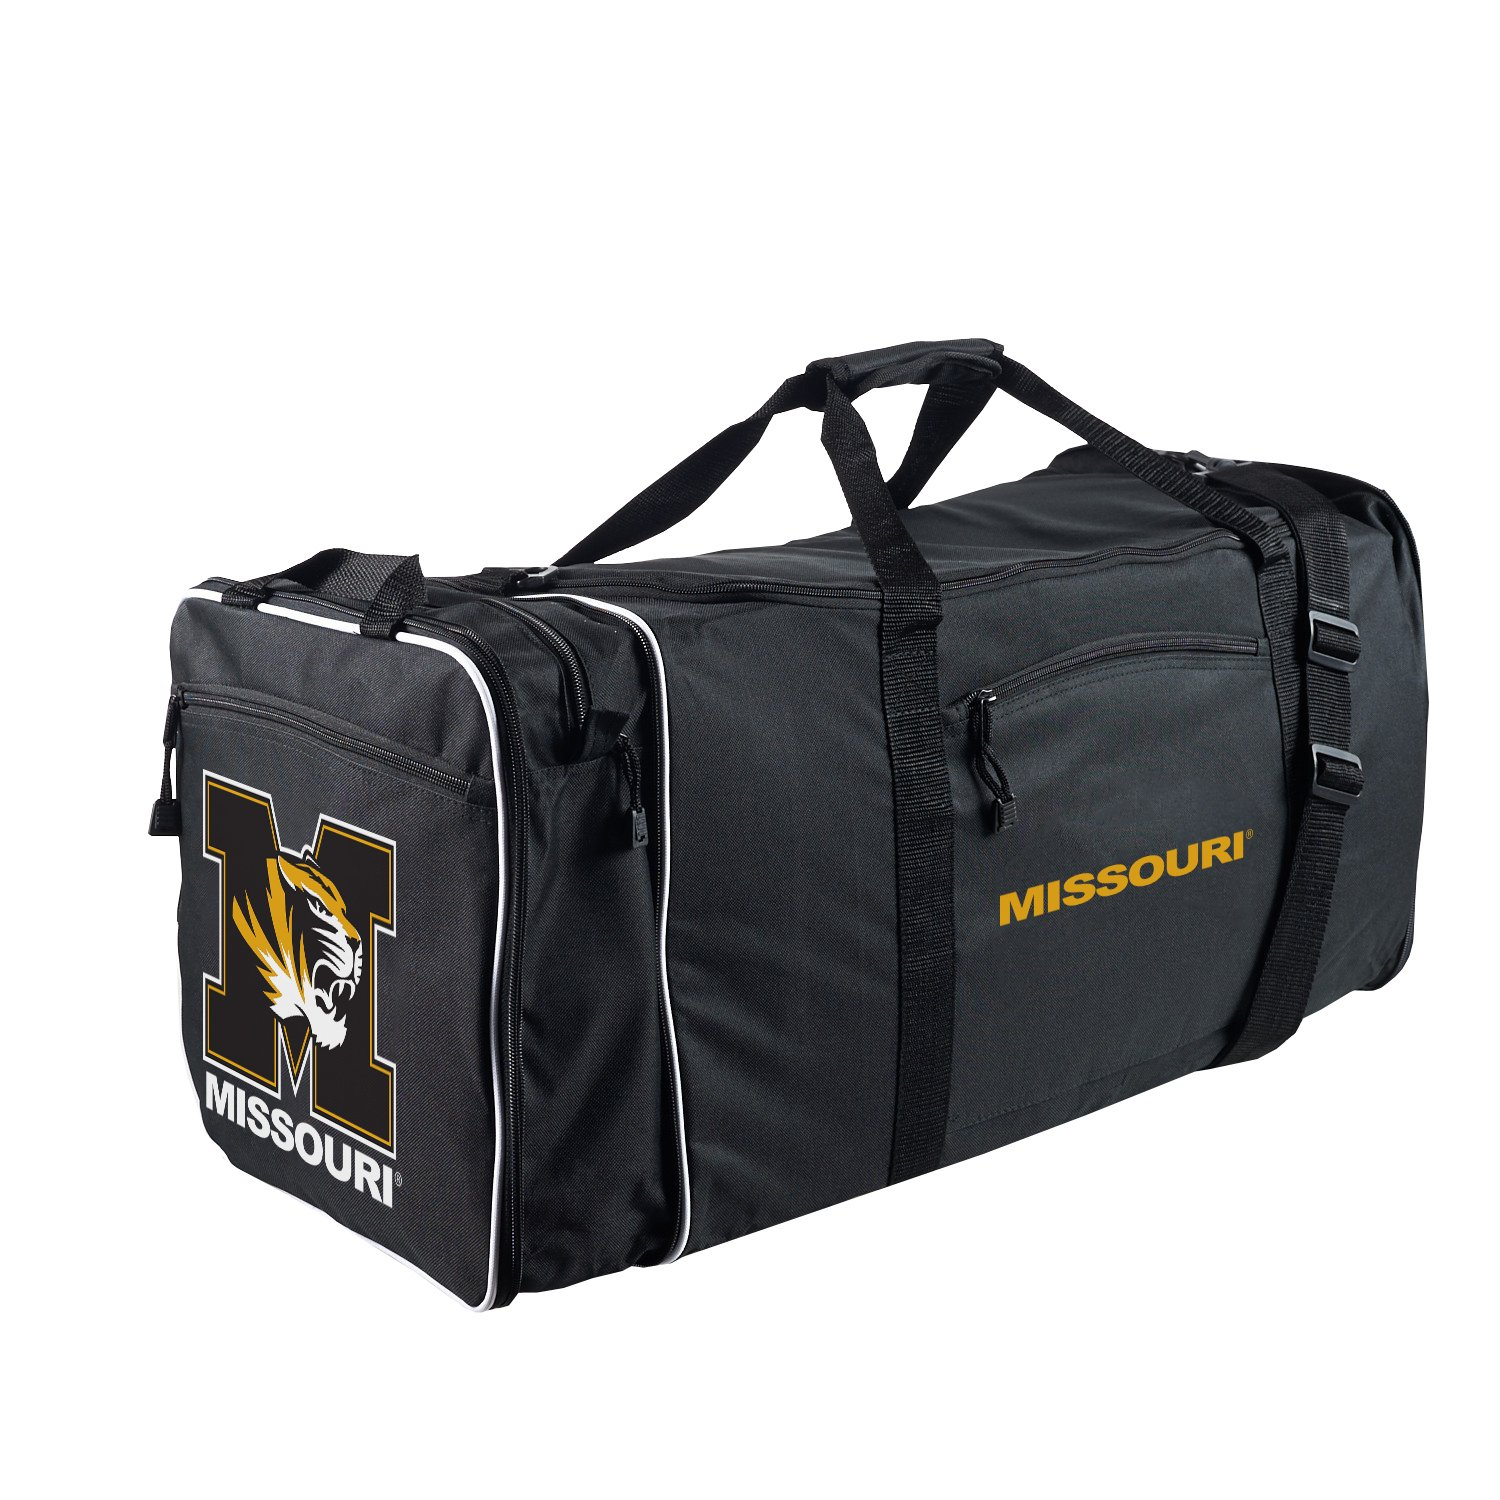 Officially Licensed NCAA Missouri Tigers Steal Duffel Bag by The Northwest Company (Image #2)